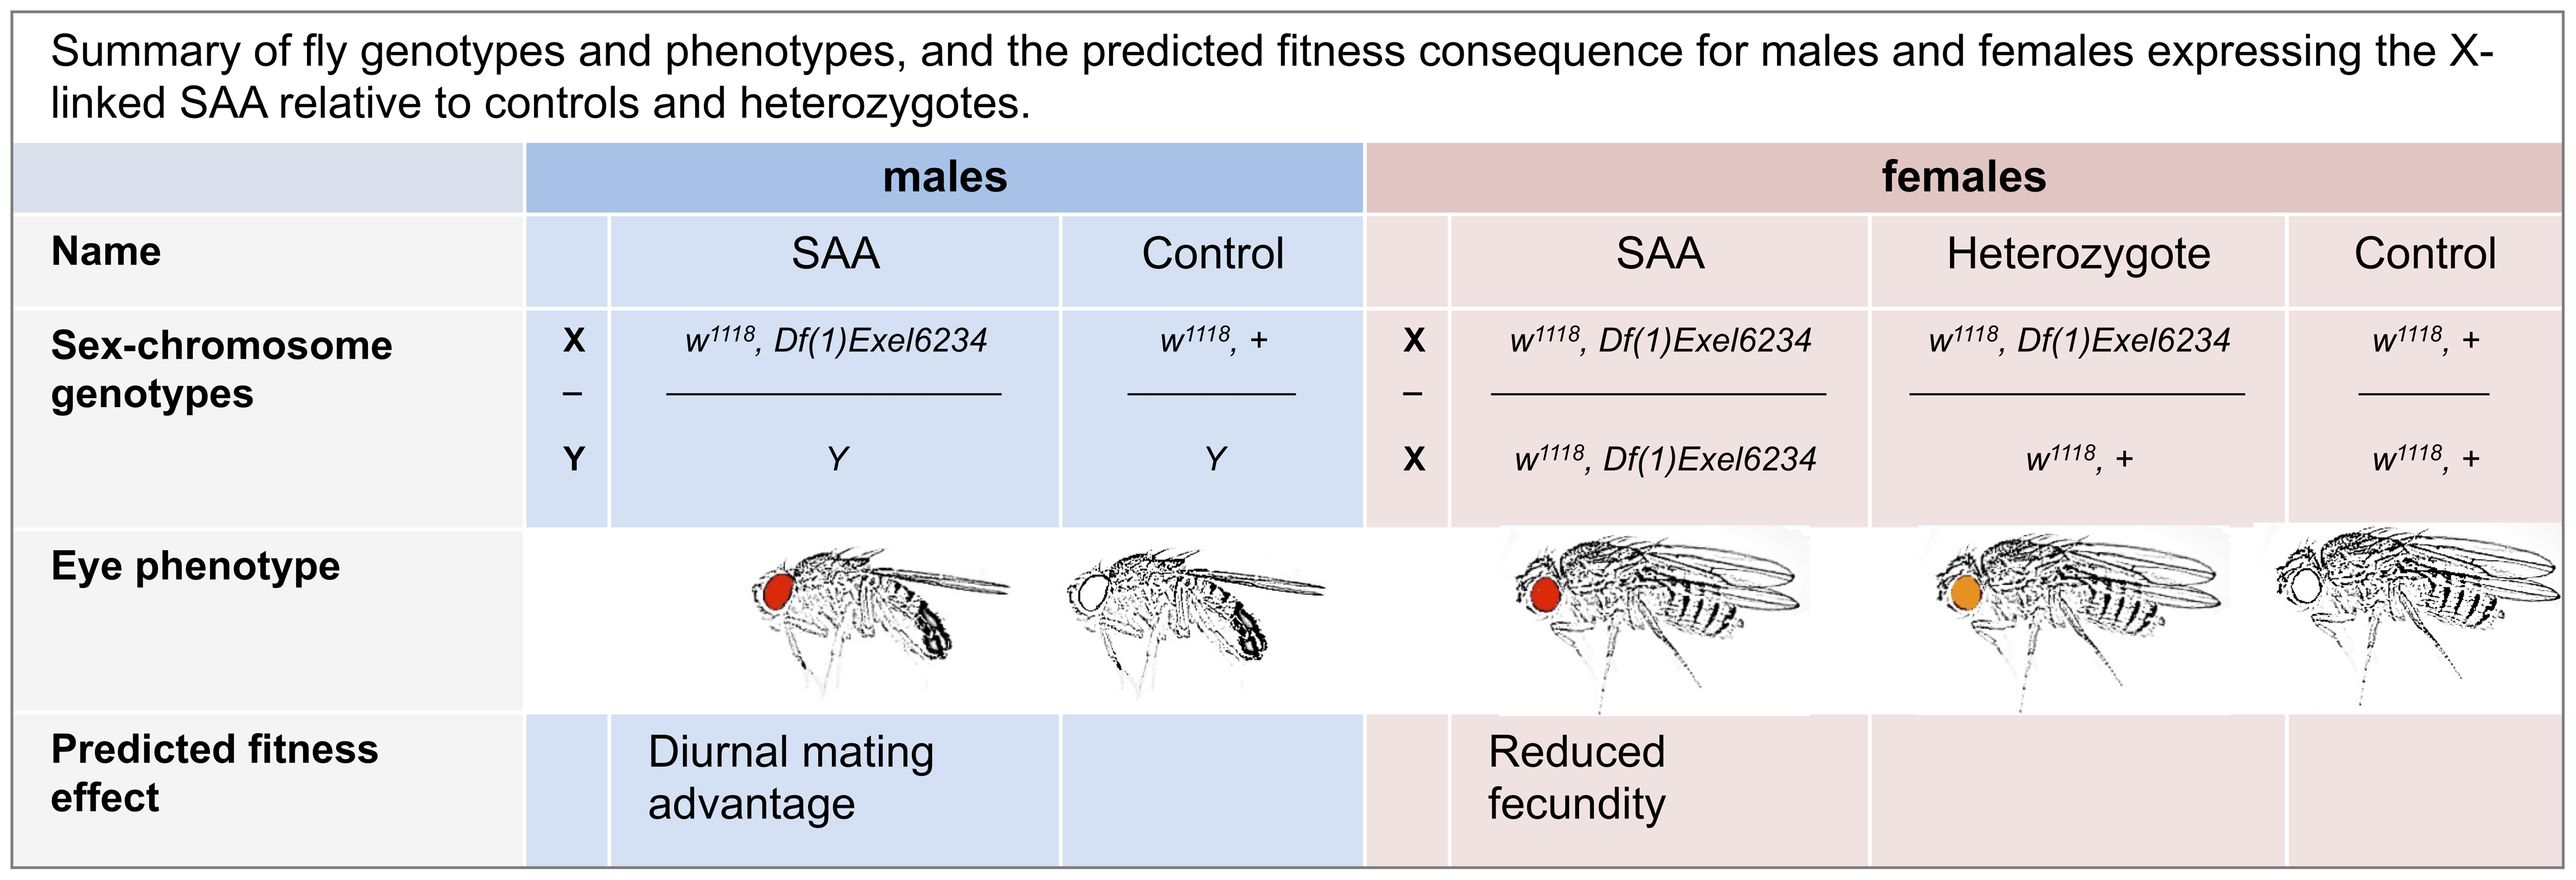 Summary of fly genotypes and phenotypes, and the predicted fitness consequence for males and females expressing the X-linked SAA (sexually antagonistic allele) relative to controls and heterozygotes.